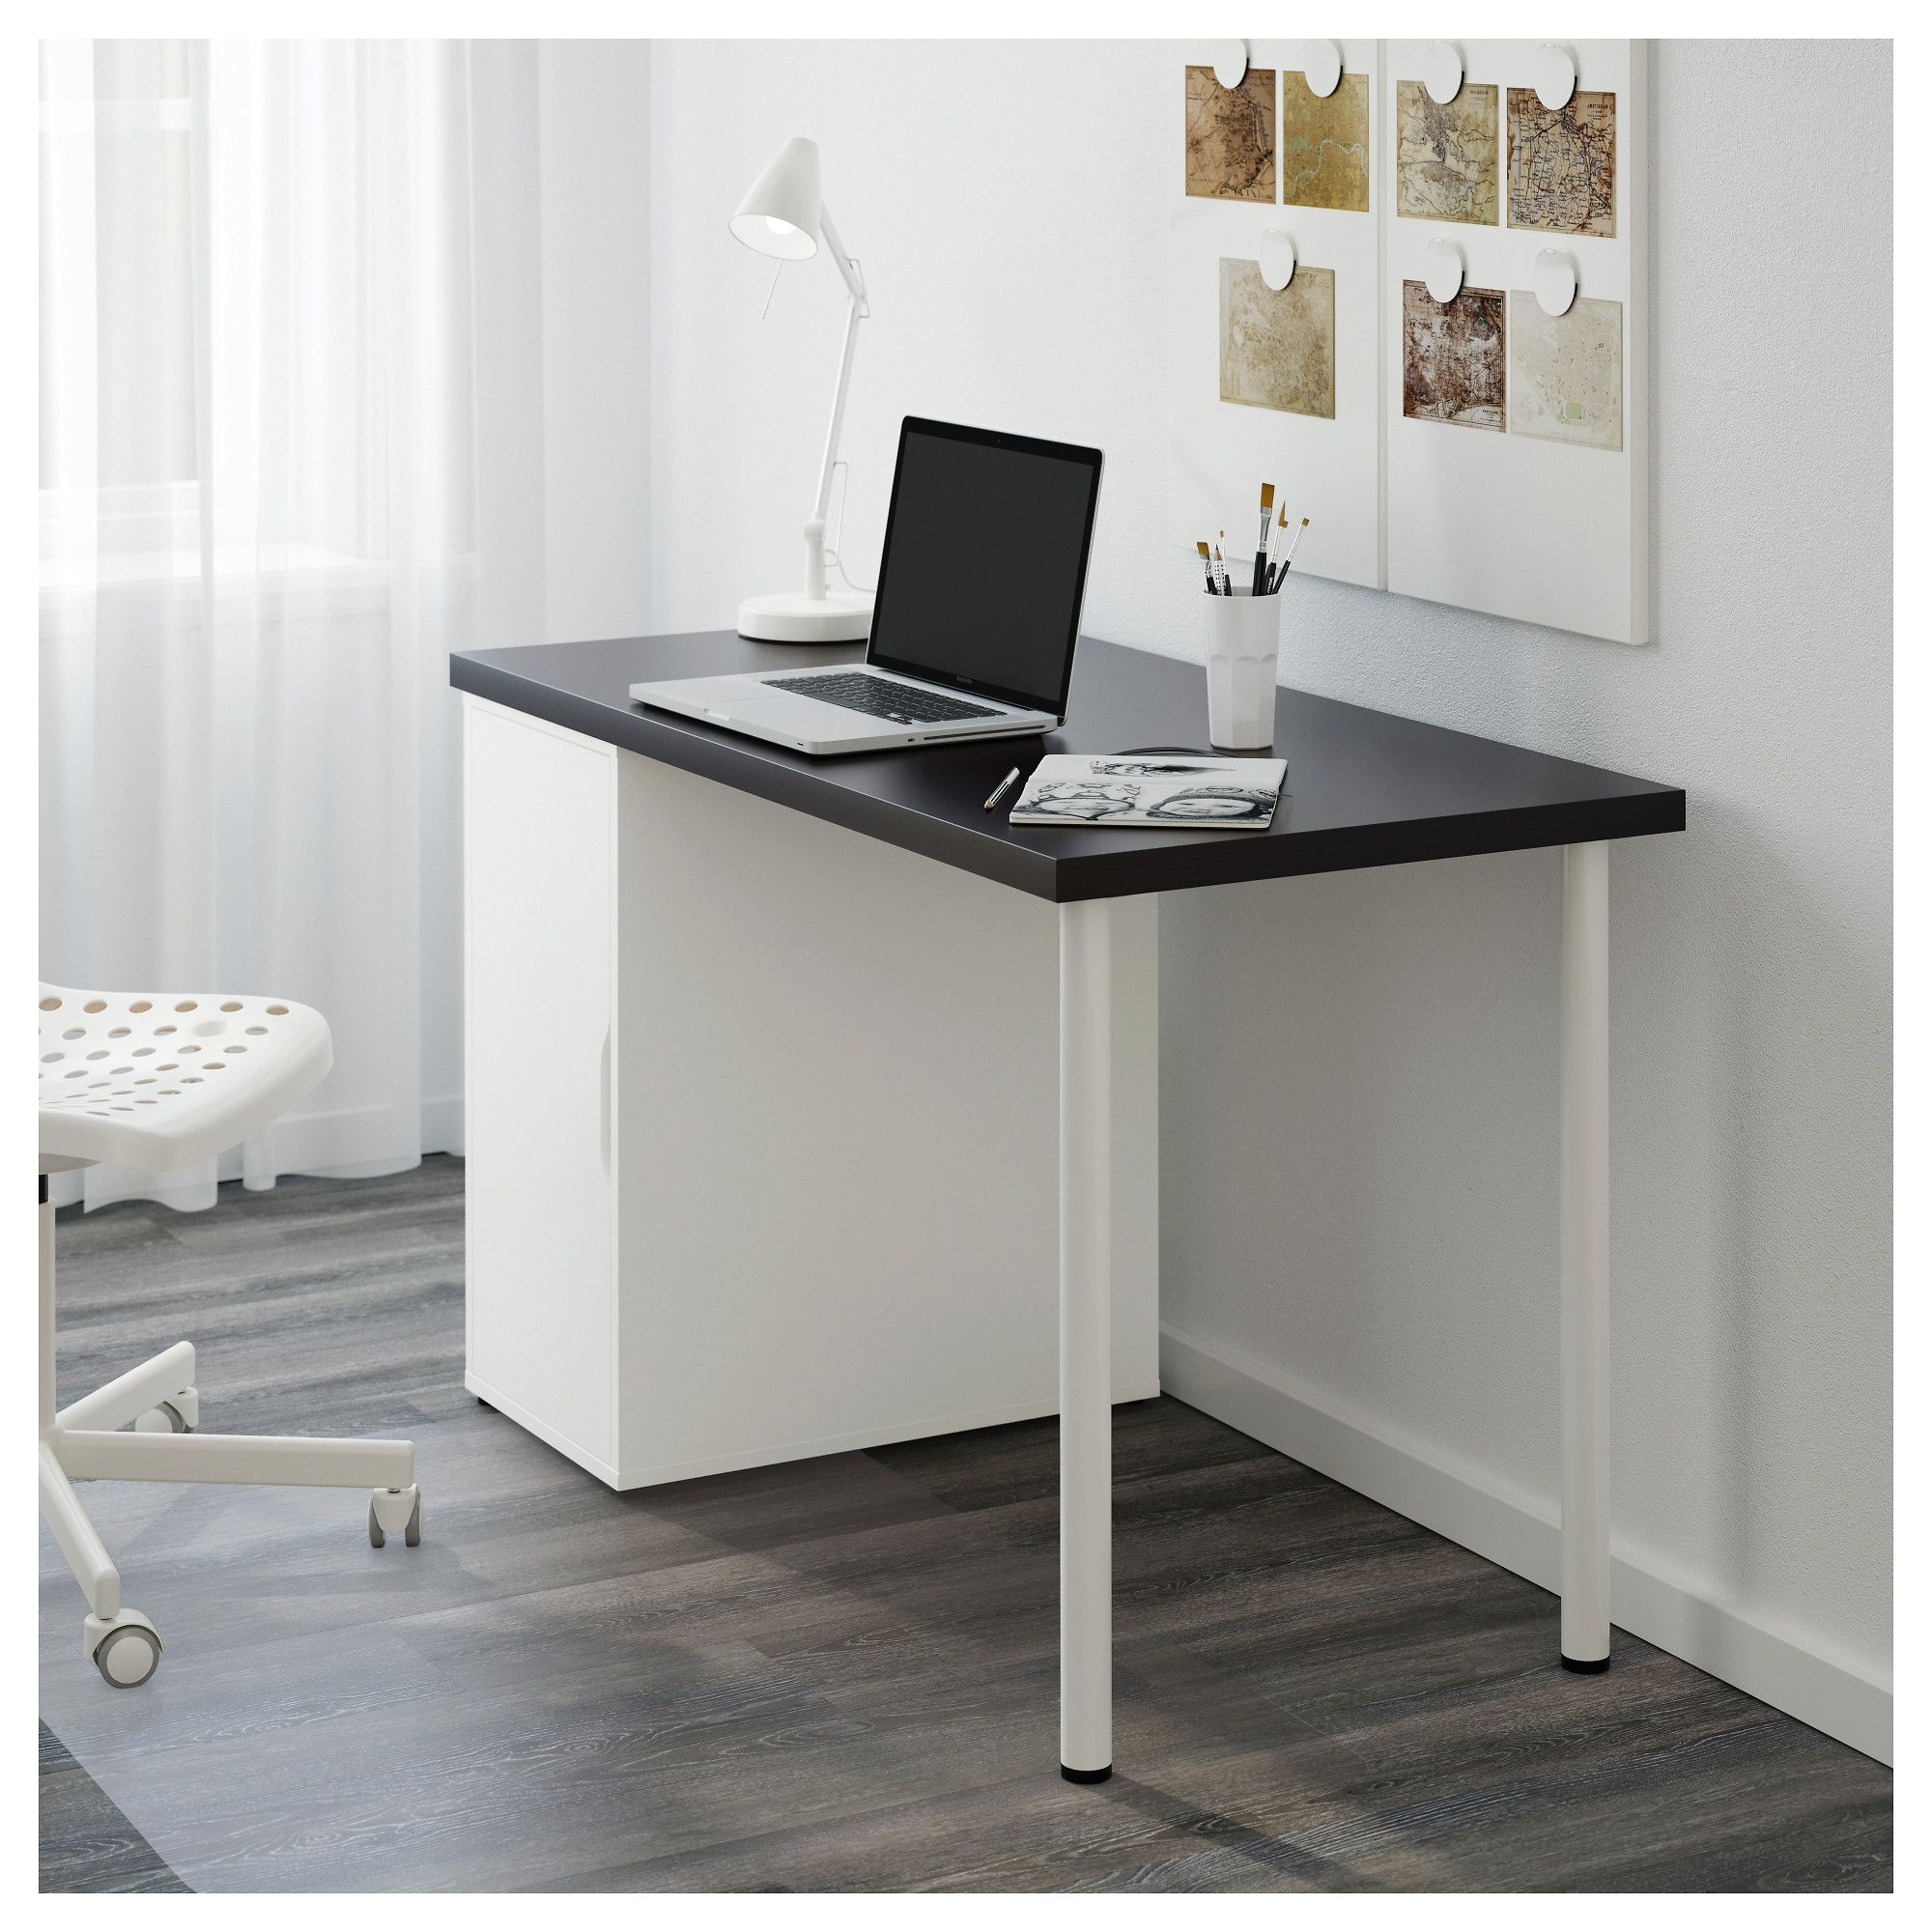 LINNMON / ALEX Table blackbrown, white 120x60 cm Home